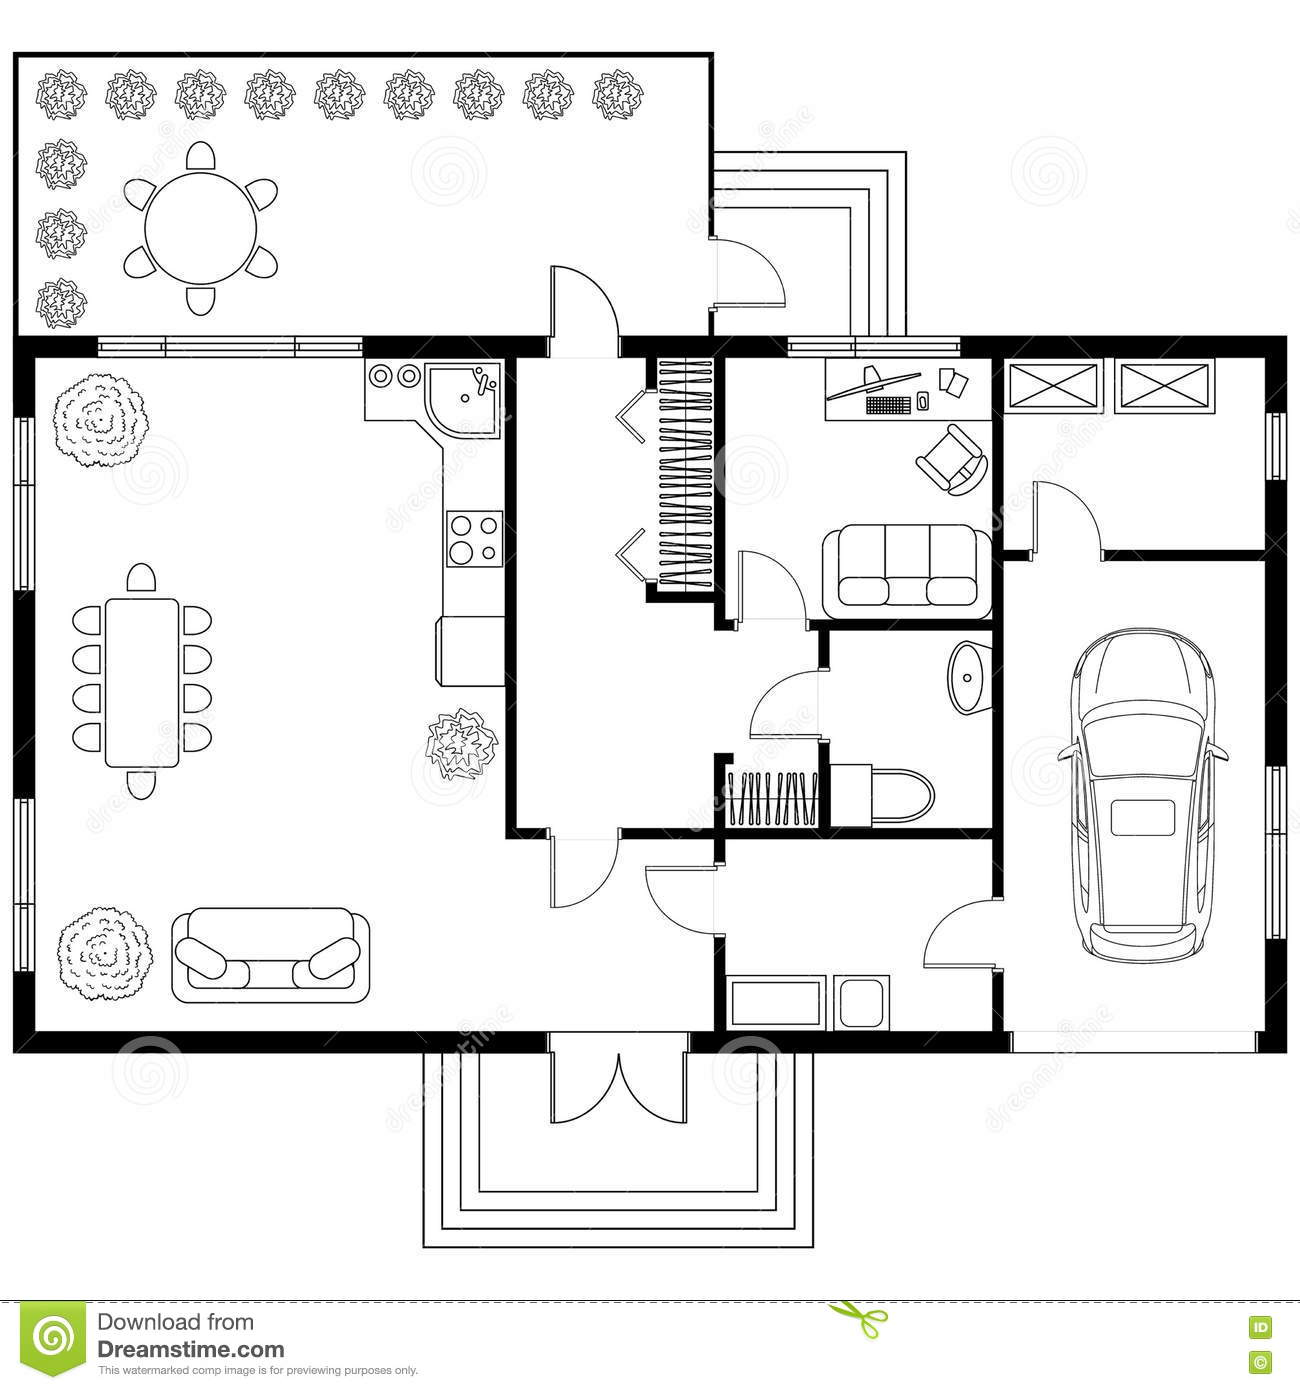 Plan architectural d 39 une maison avec le garage for Architecture d une maison